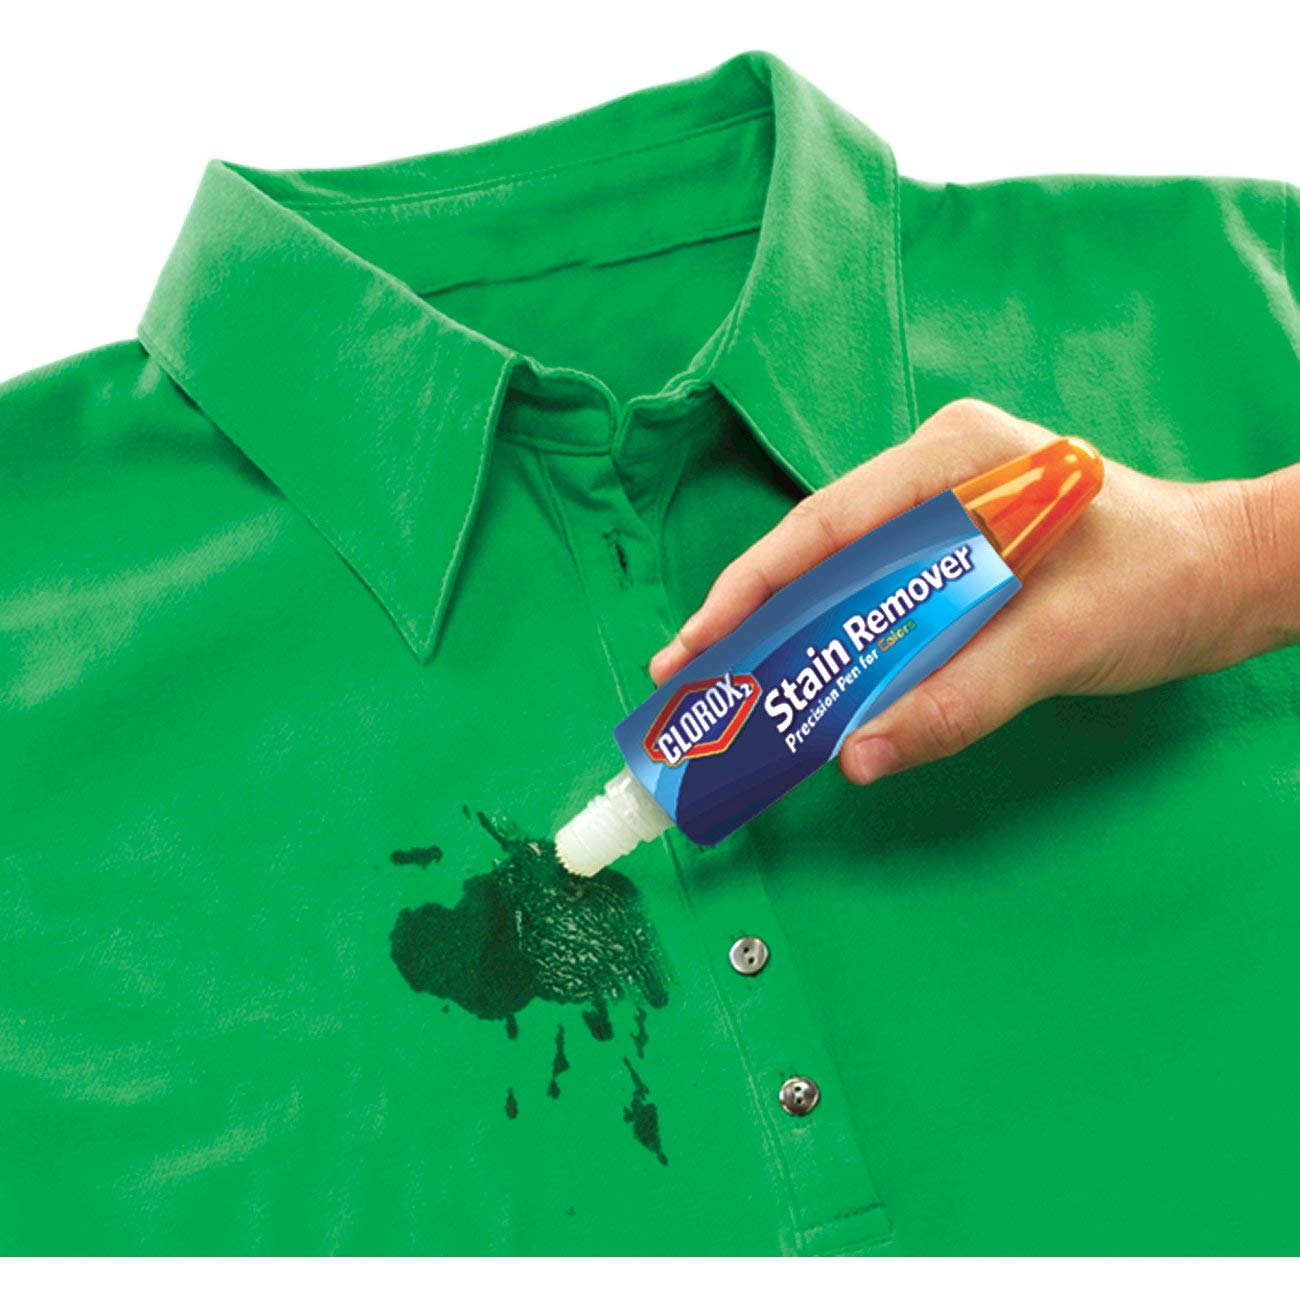 Clorox Laundry Pens, 2 Bleach Pens and 2 Stain Fighter Pens for Colors, 4 Pens by Clorox (Image #4)